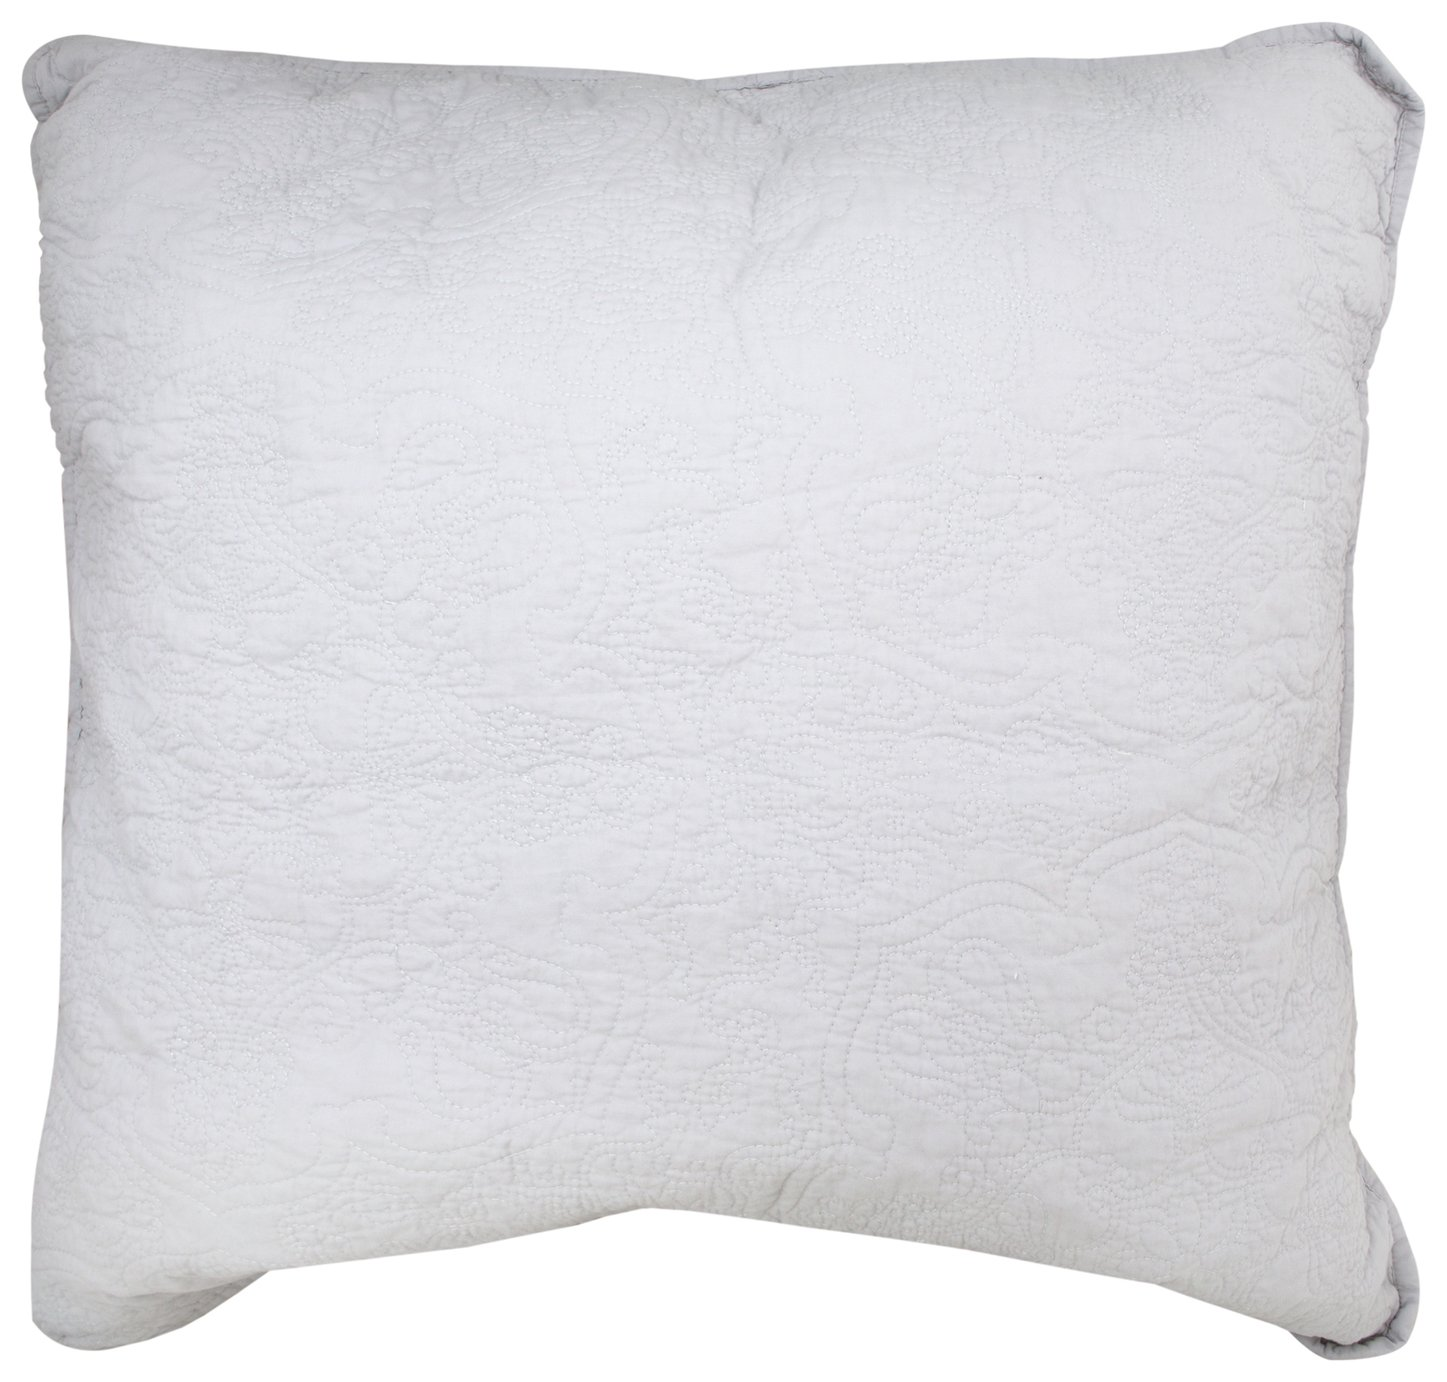 Sainsbury's Home Parisian Maison Quilted Pillow - Grey